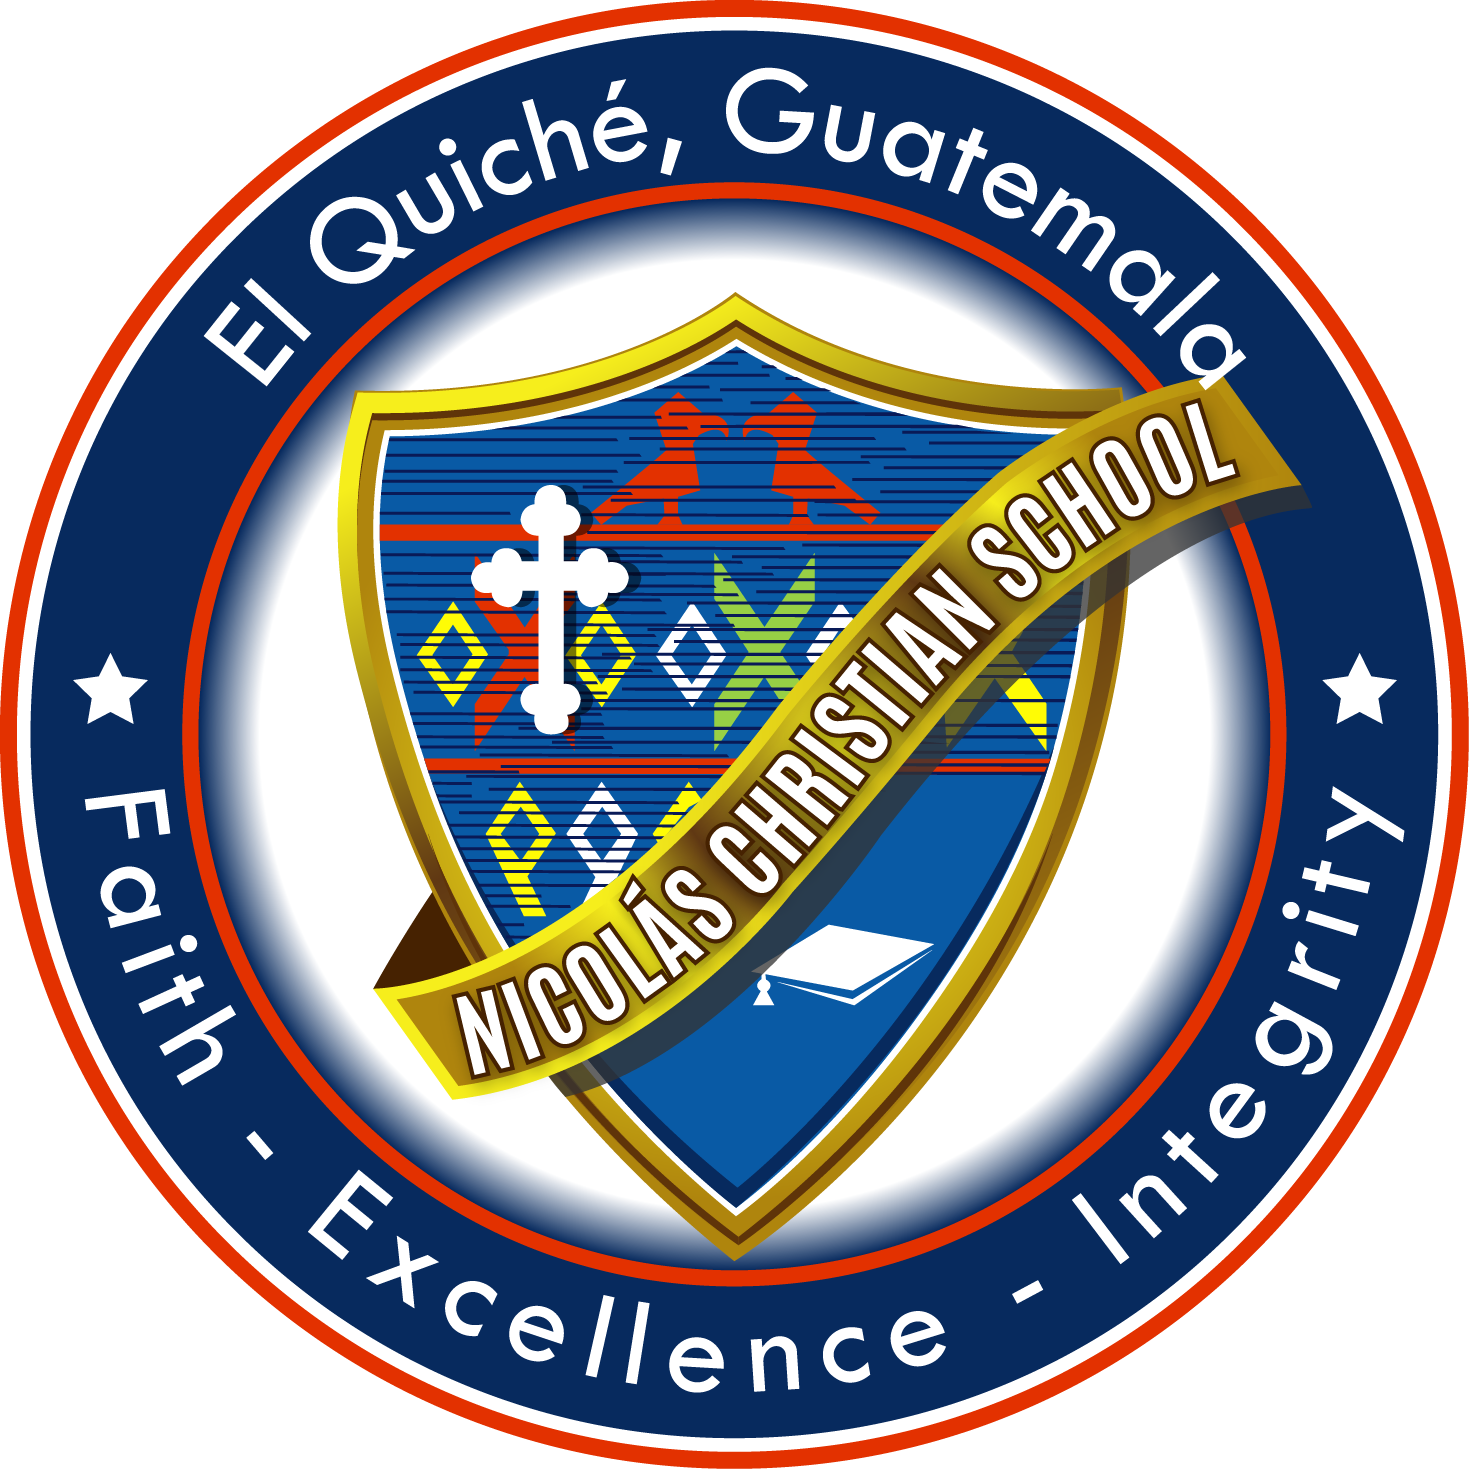 Nicolas Christian School Seal